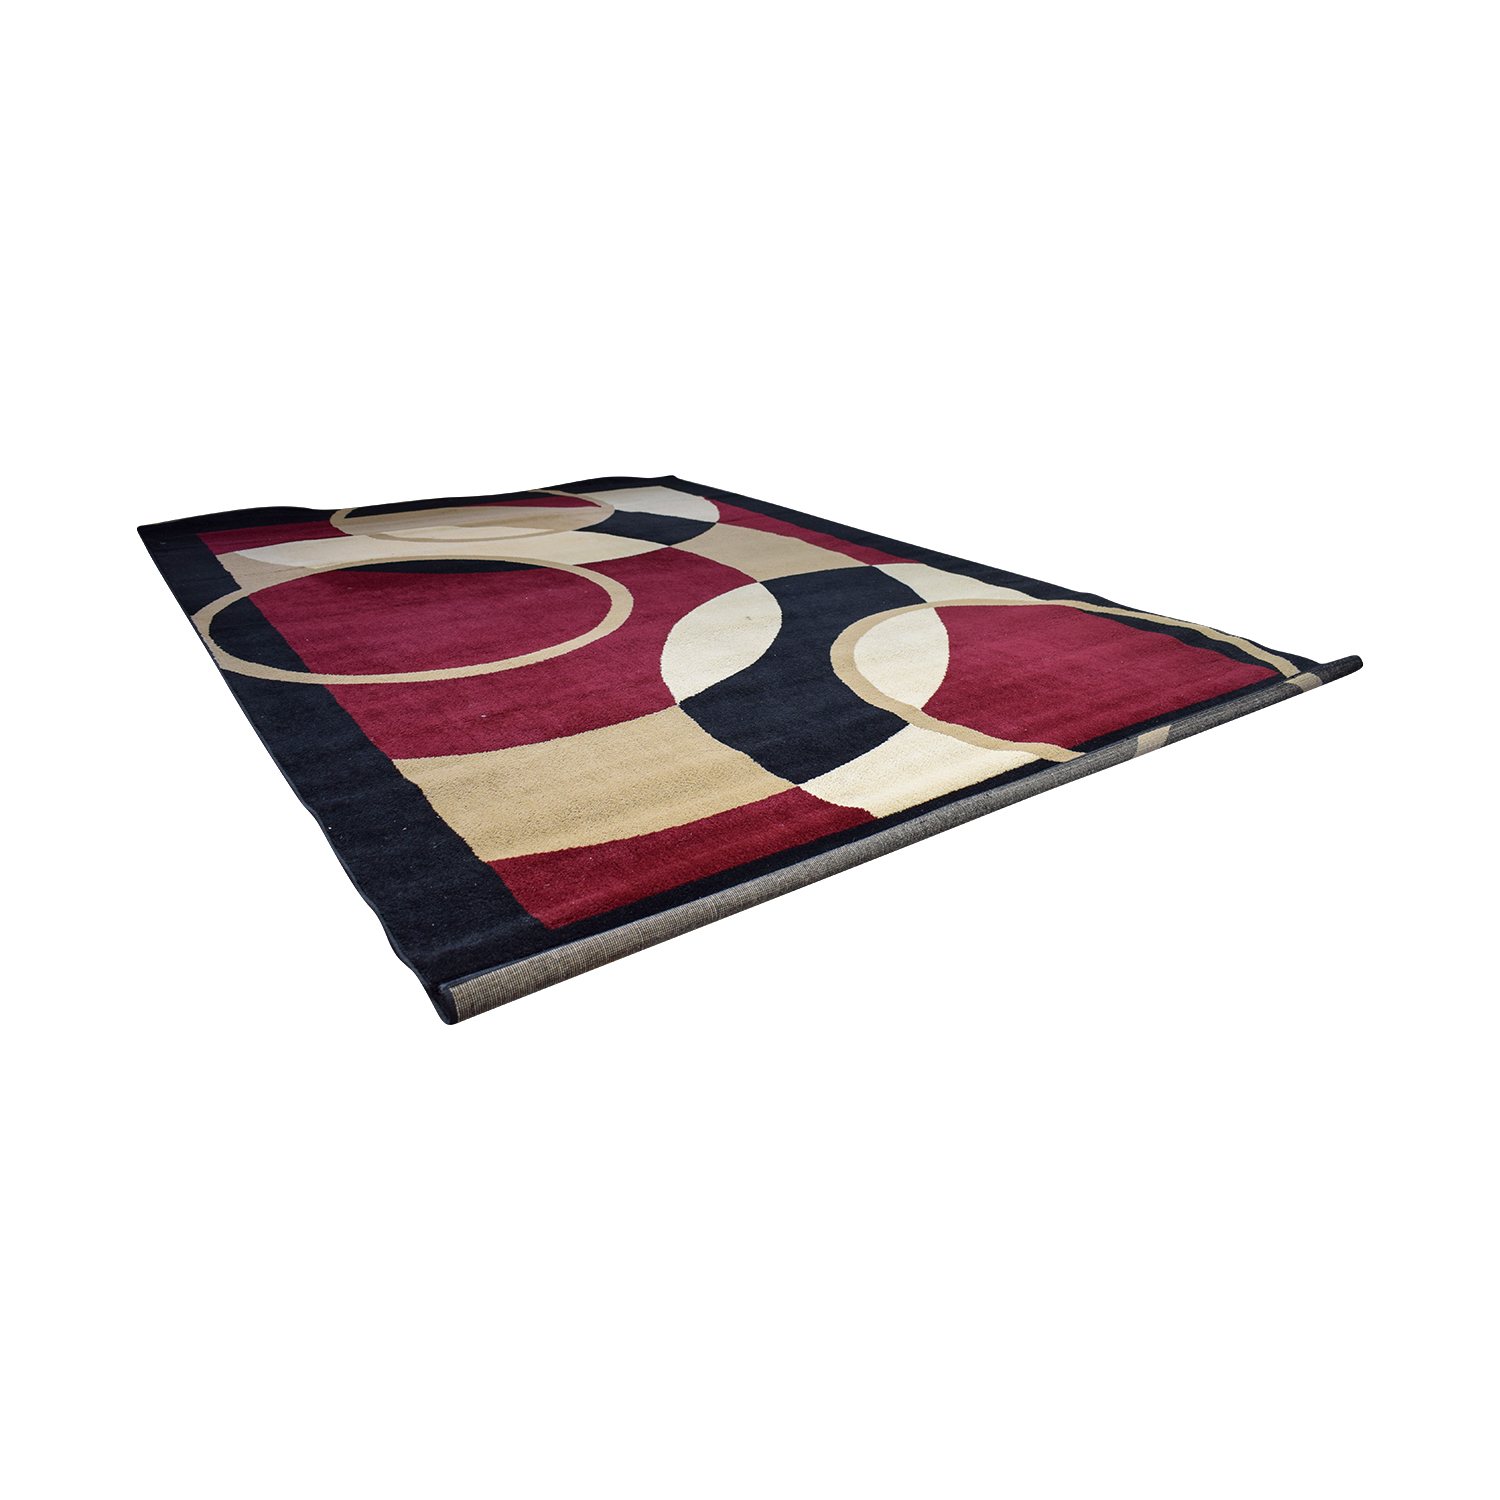 Red Beige and Black Circles Pattern Carpet for sale